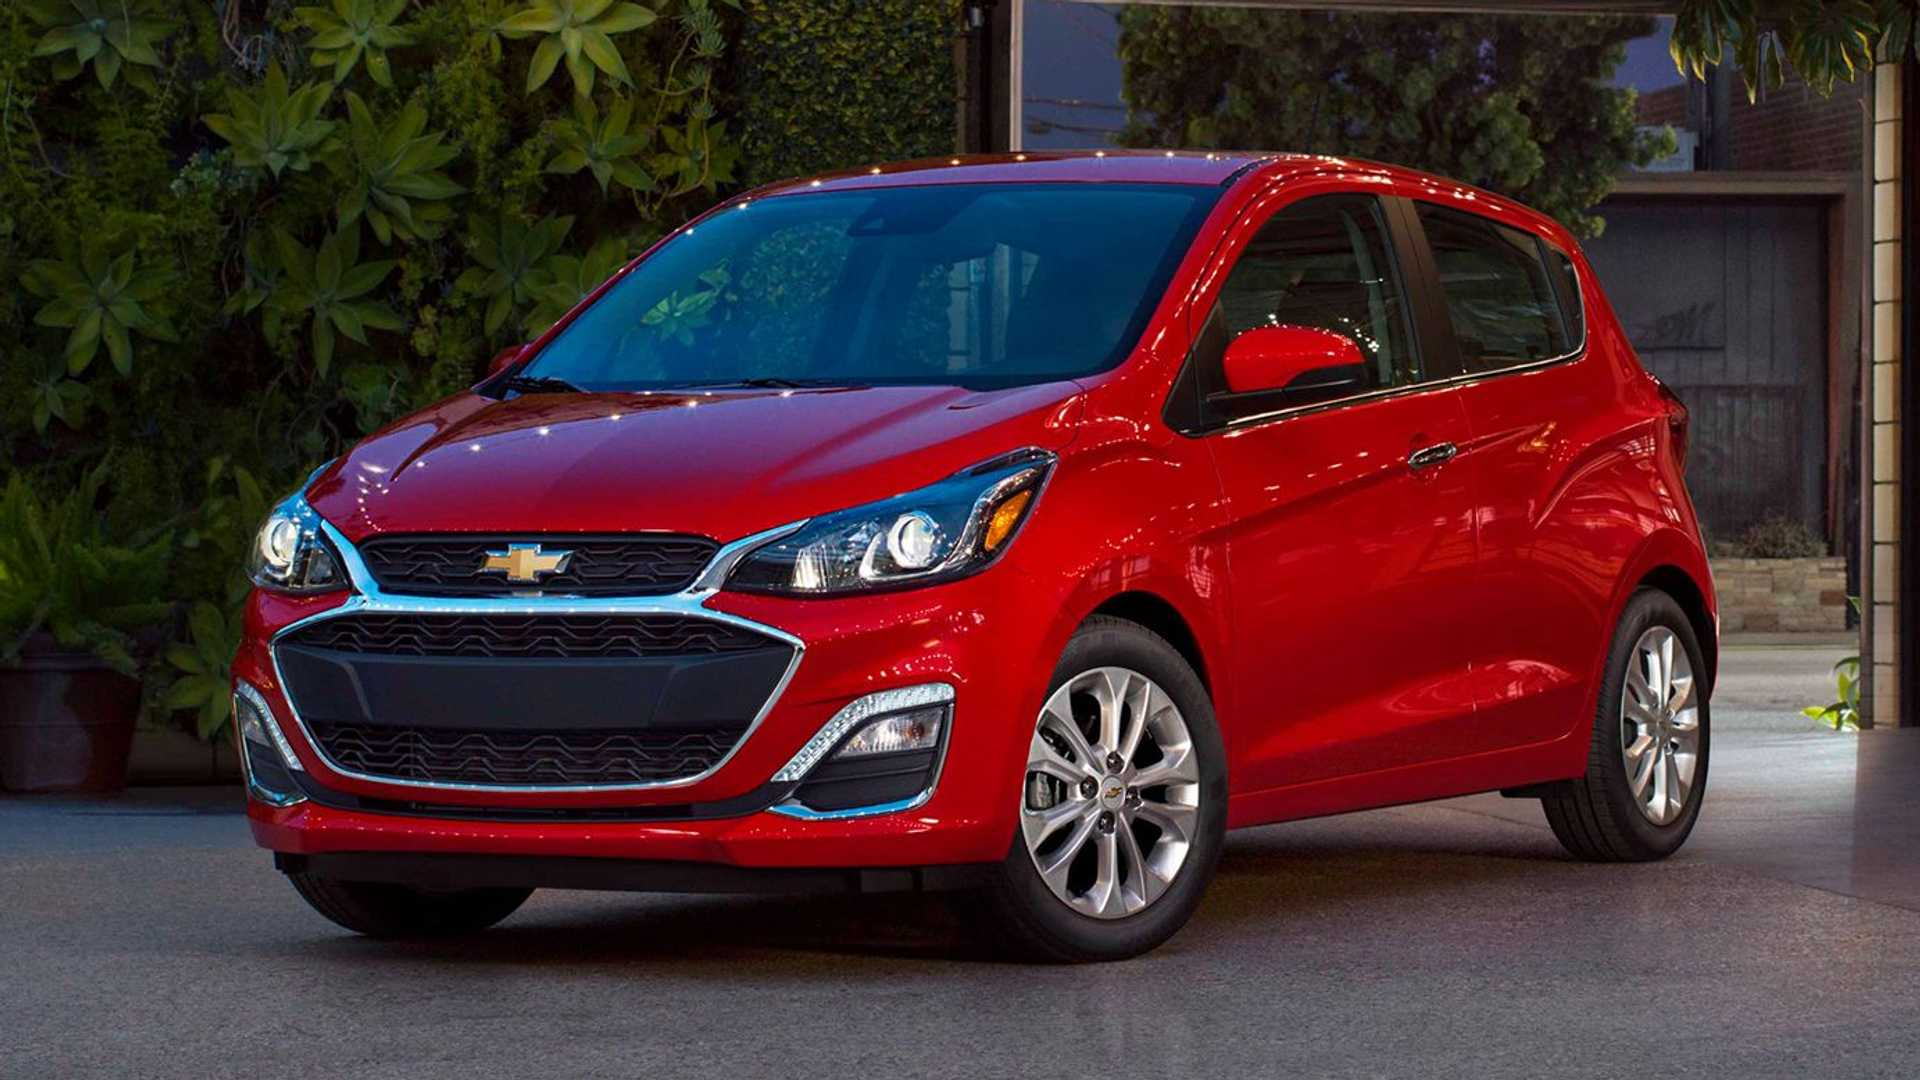 2021 Chevrolet Spark – Best Car On A Budget